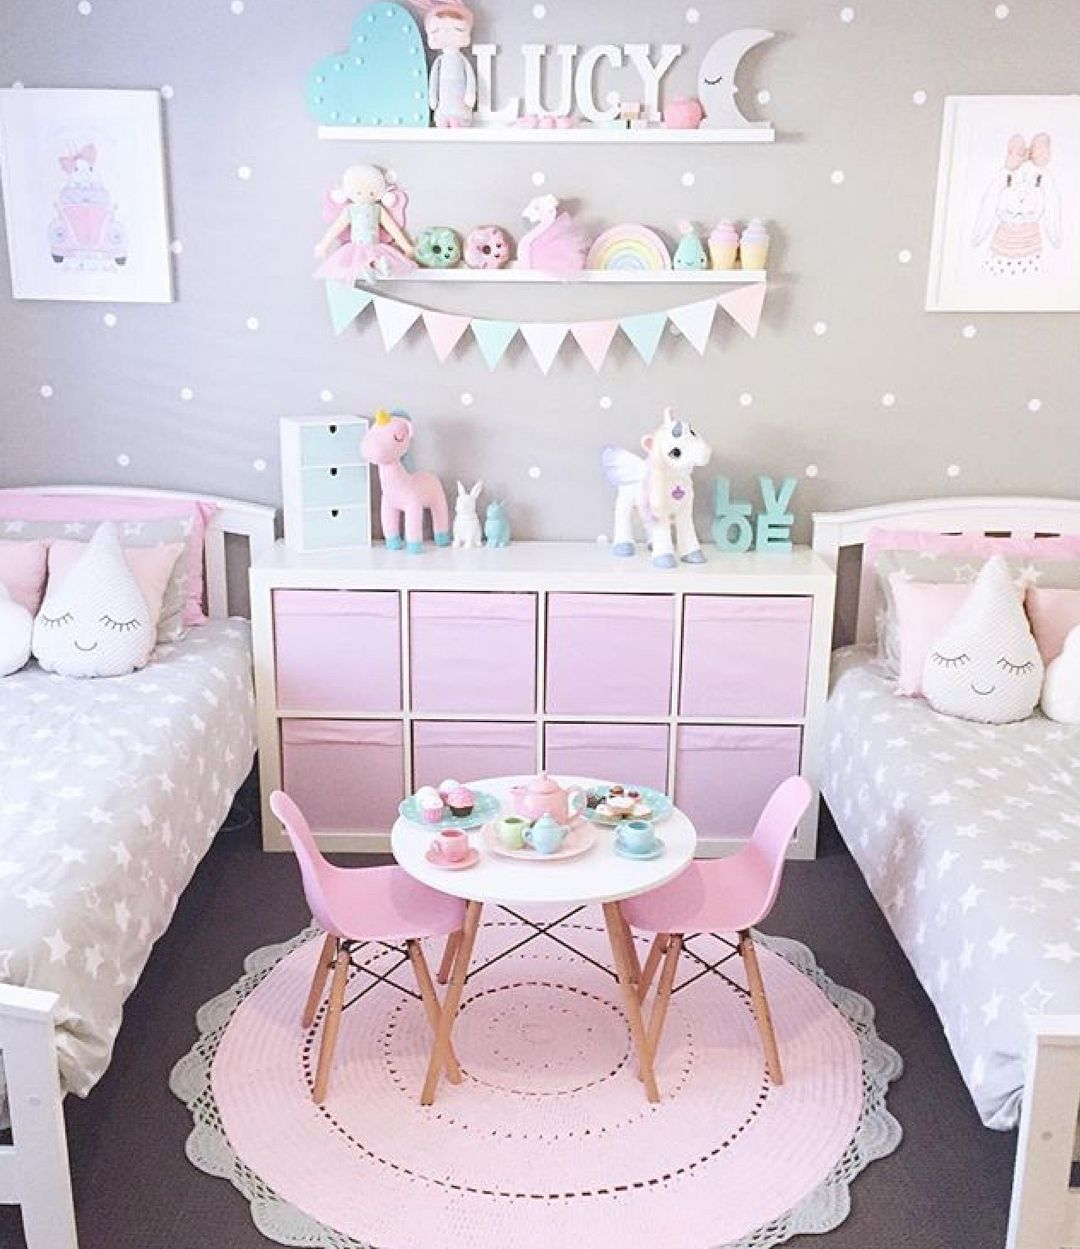 15 Impressive Wall Decorating Ideas for Your Living Room | Futurist Architecture #girlsbedroom